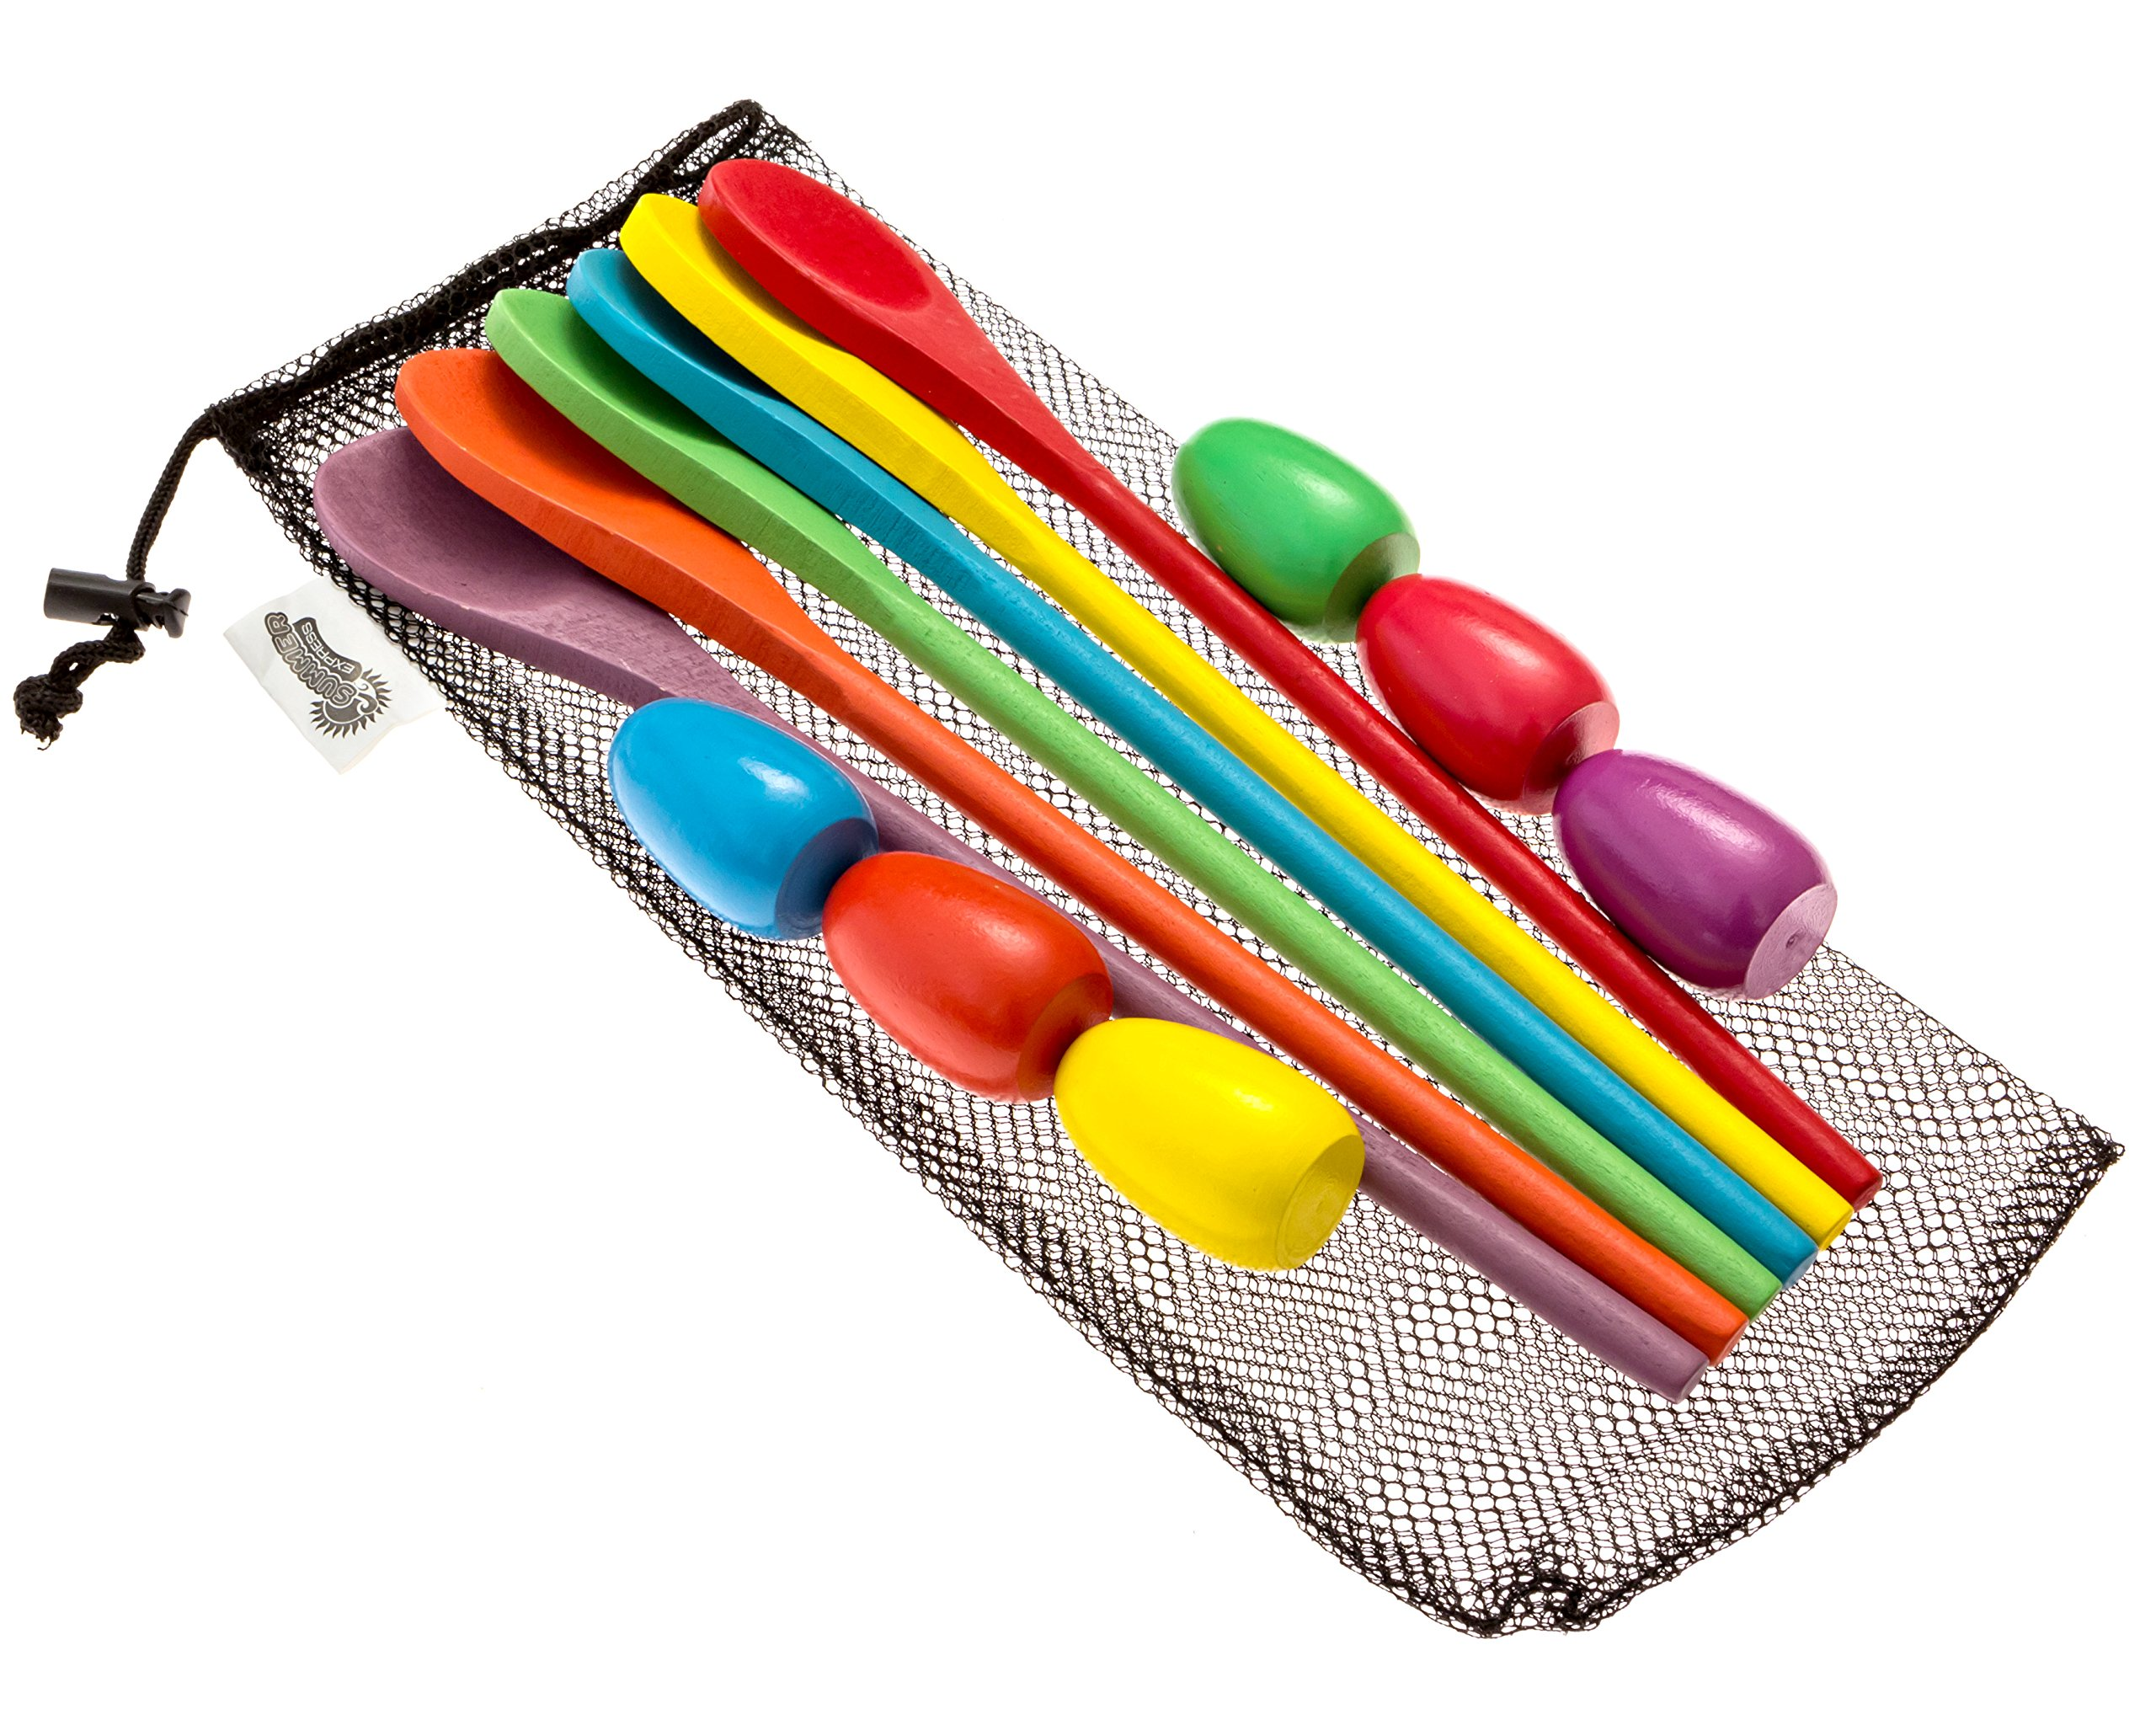 Summer Express Egg and Spoon Relay Race Game - Fun game for Kids Parties, Birthdays, Family Outings - Includes 6 Eggs, 6 Spoons, and Storage Bag - Six Assorted Colors - Egg n Spoon by Summer Express (Image #4)